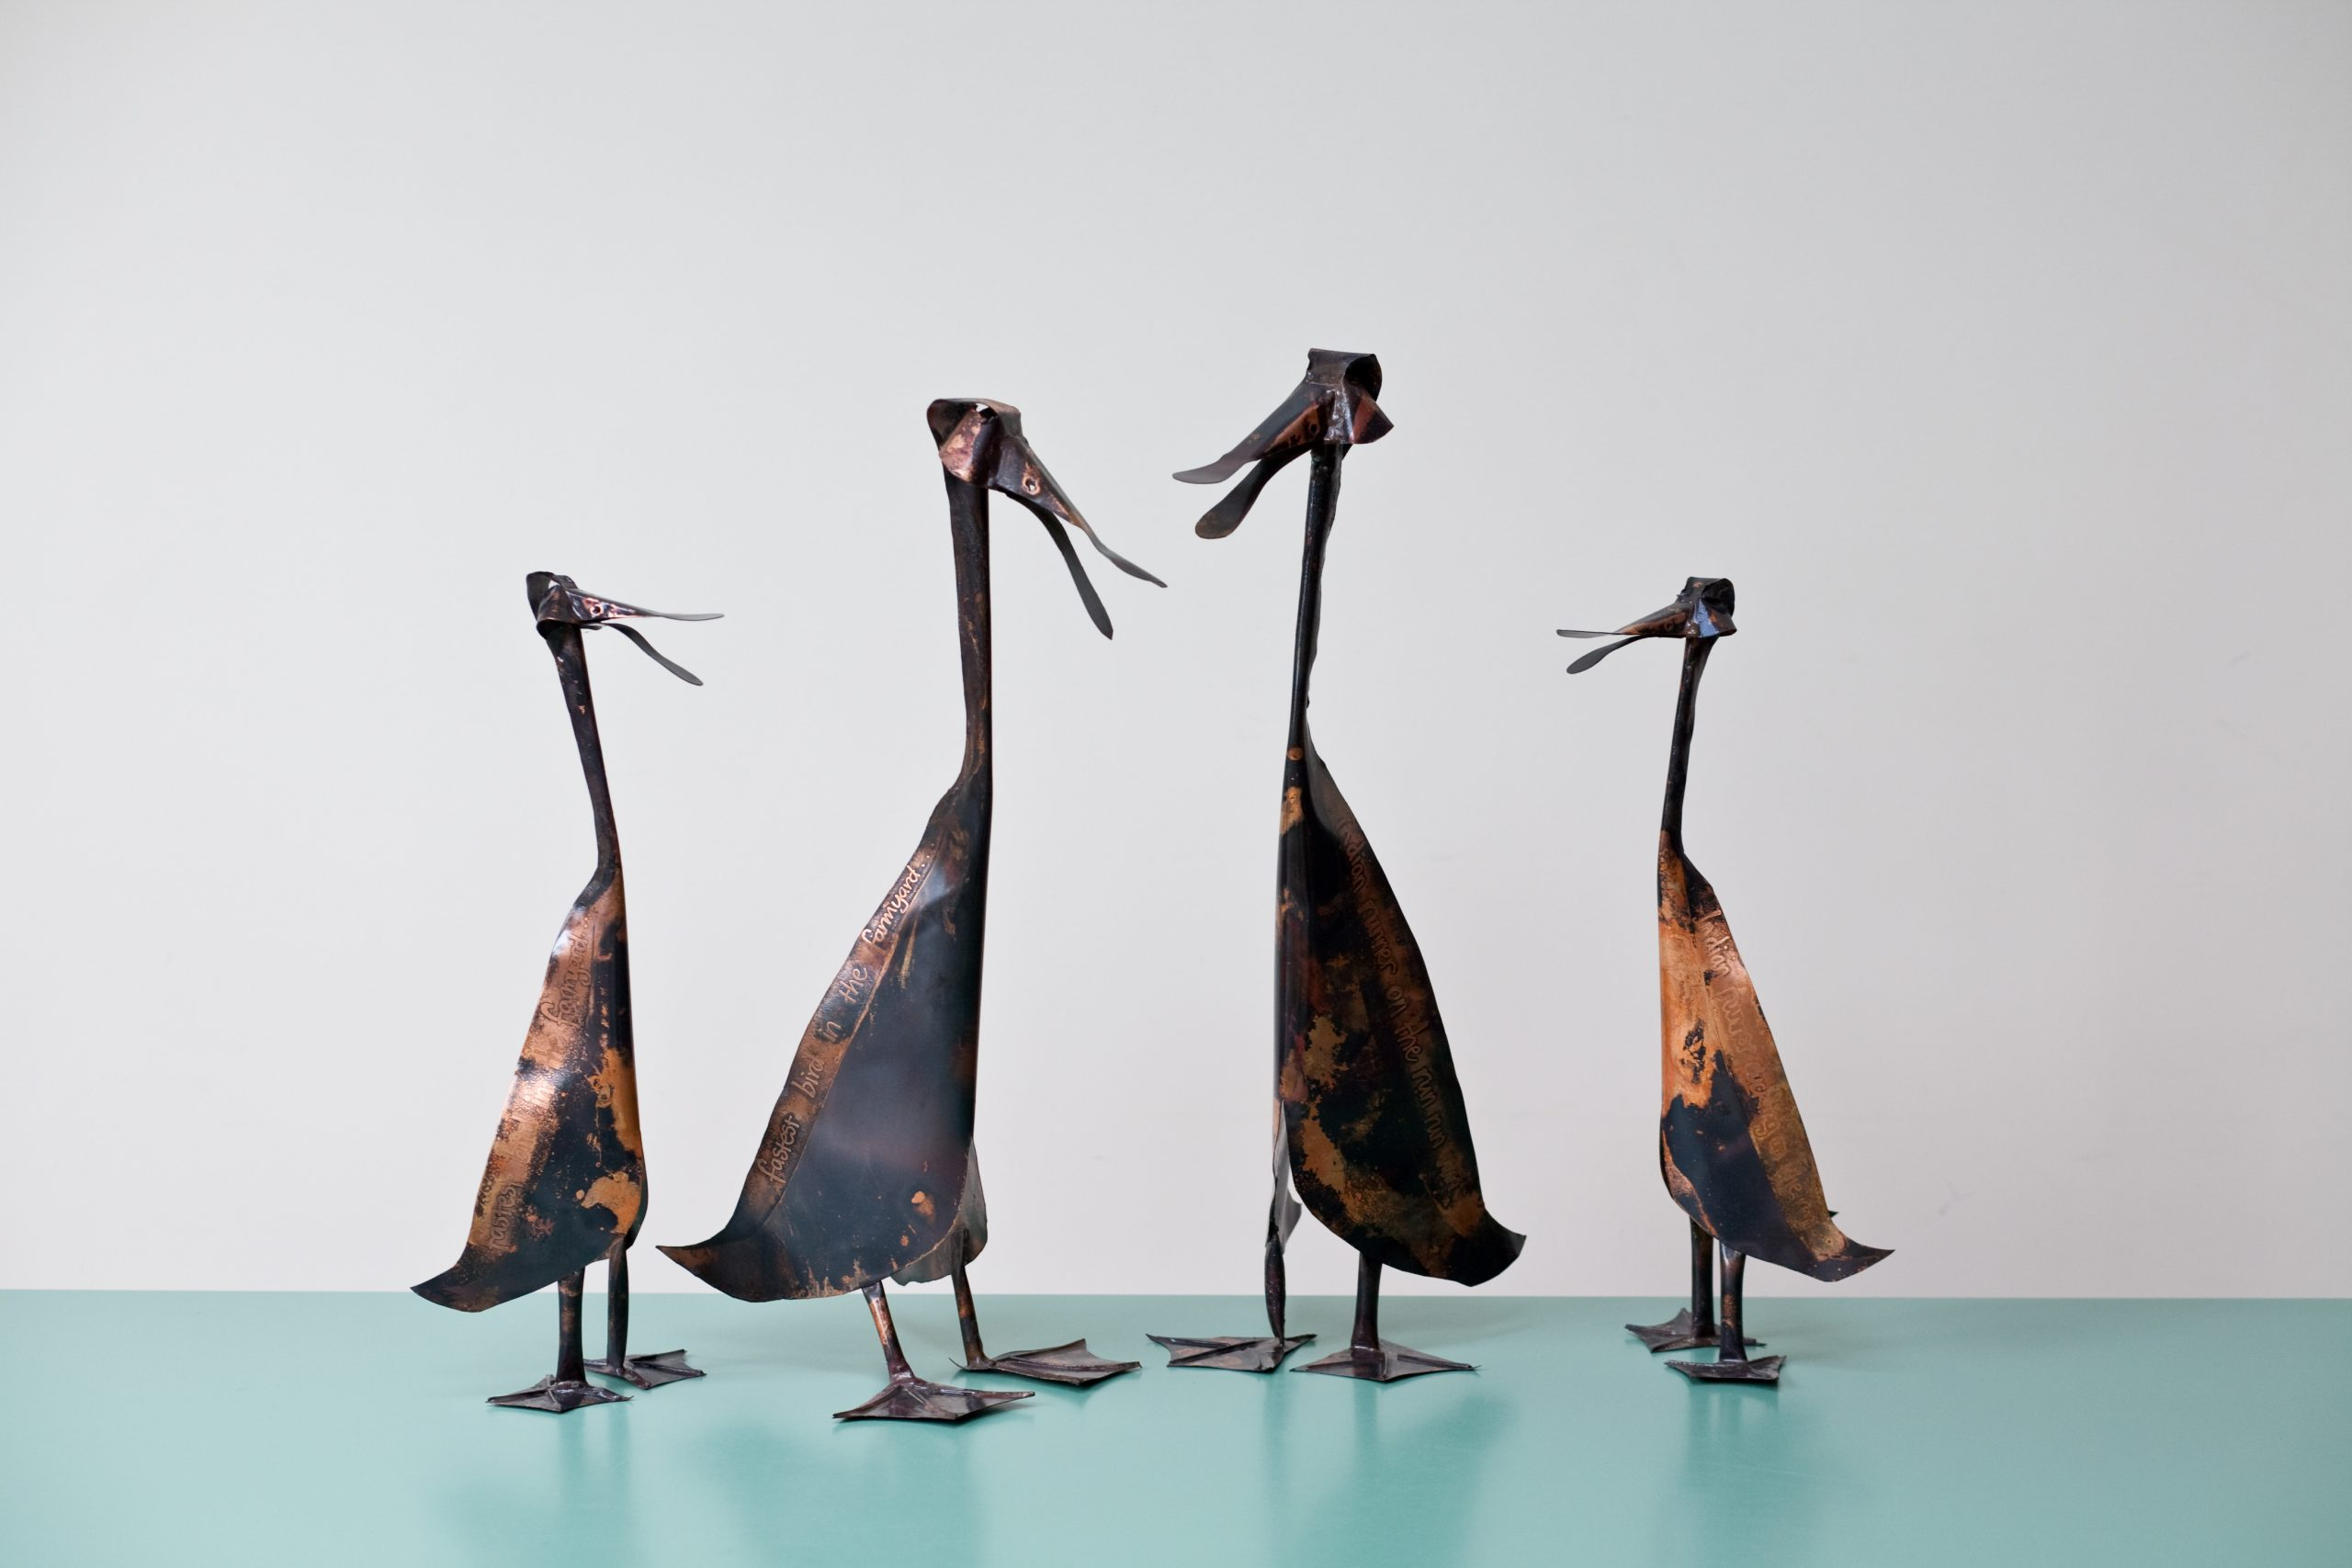 copper etched indian runner duck sculptures